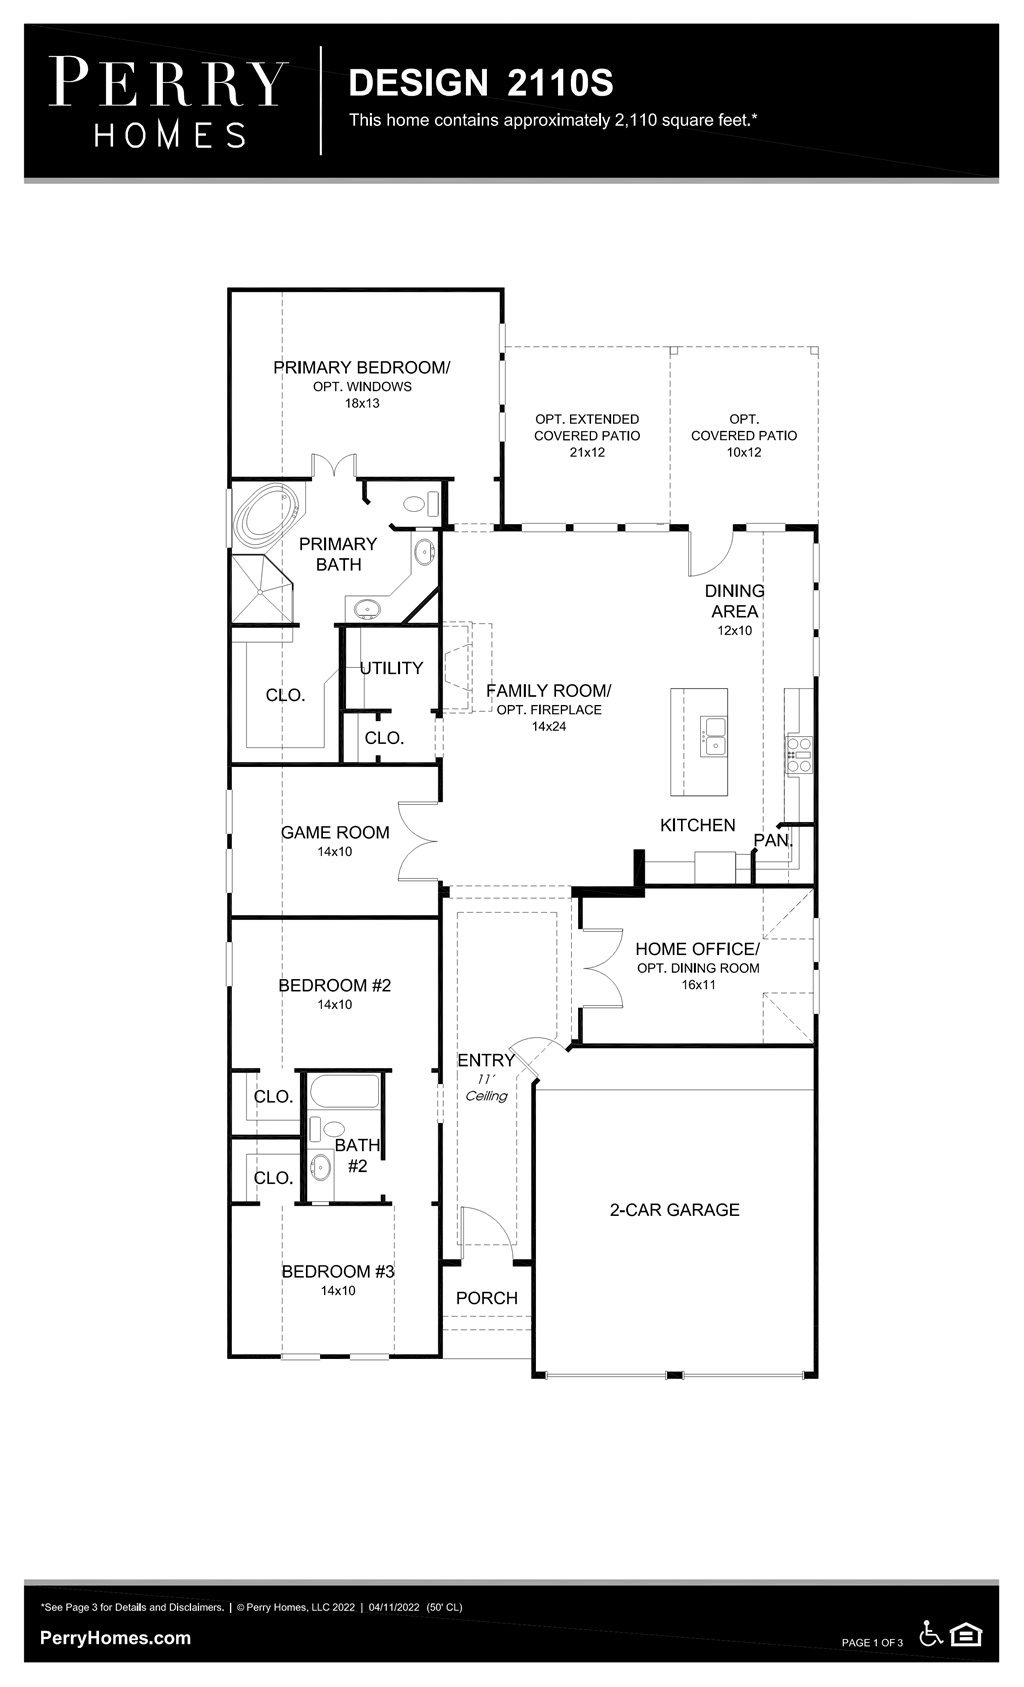 Floor Plan for 2110S